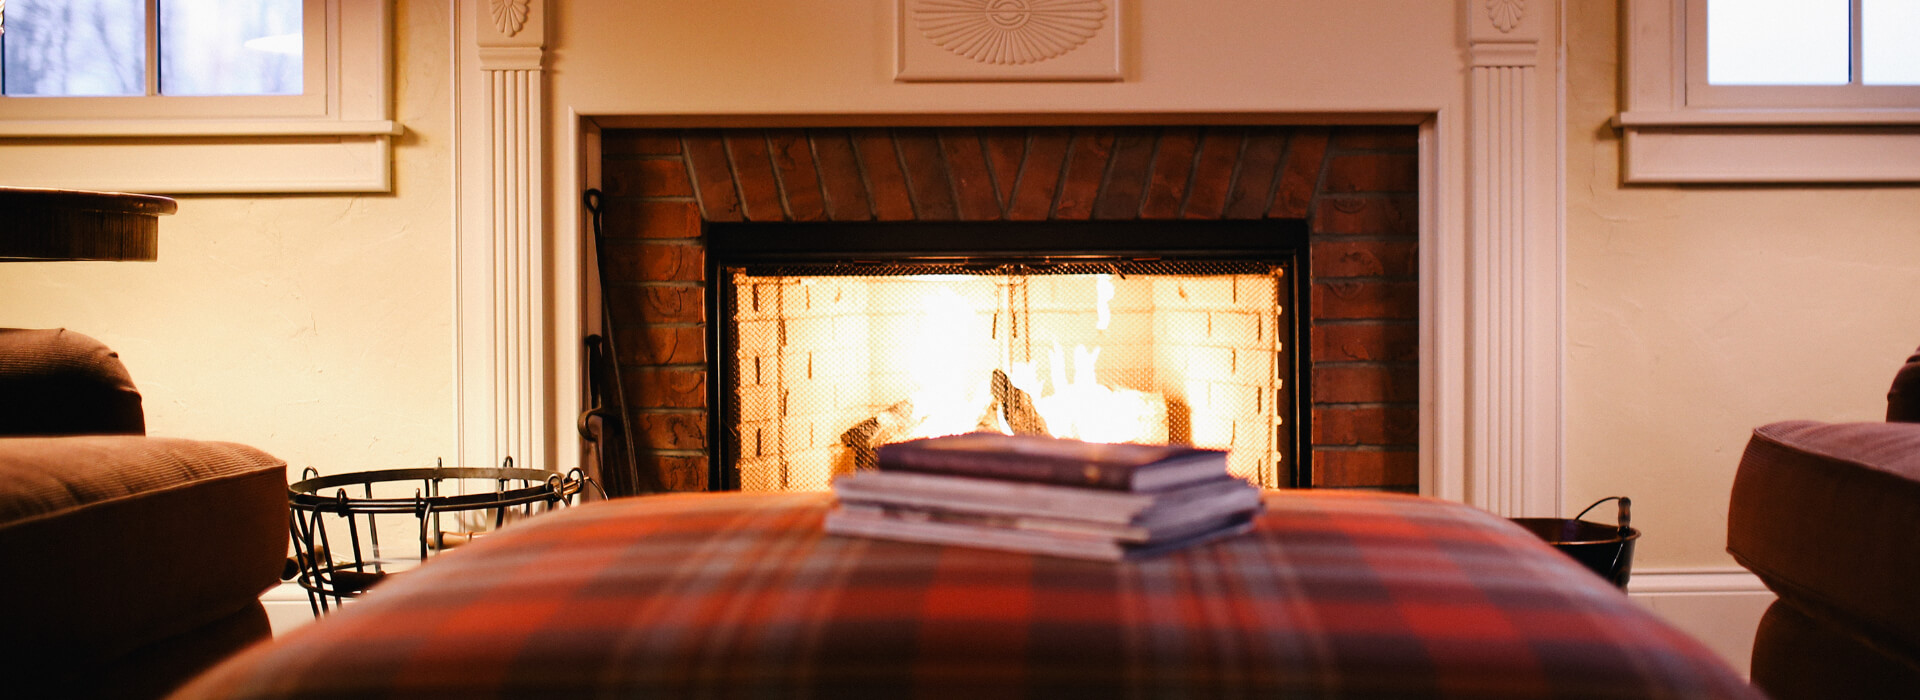 fireplaces can provide some great ambiance in the winter